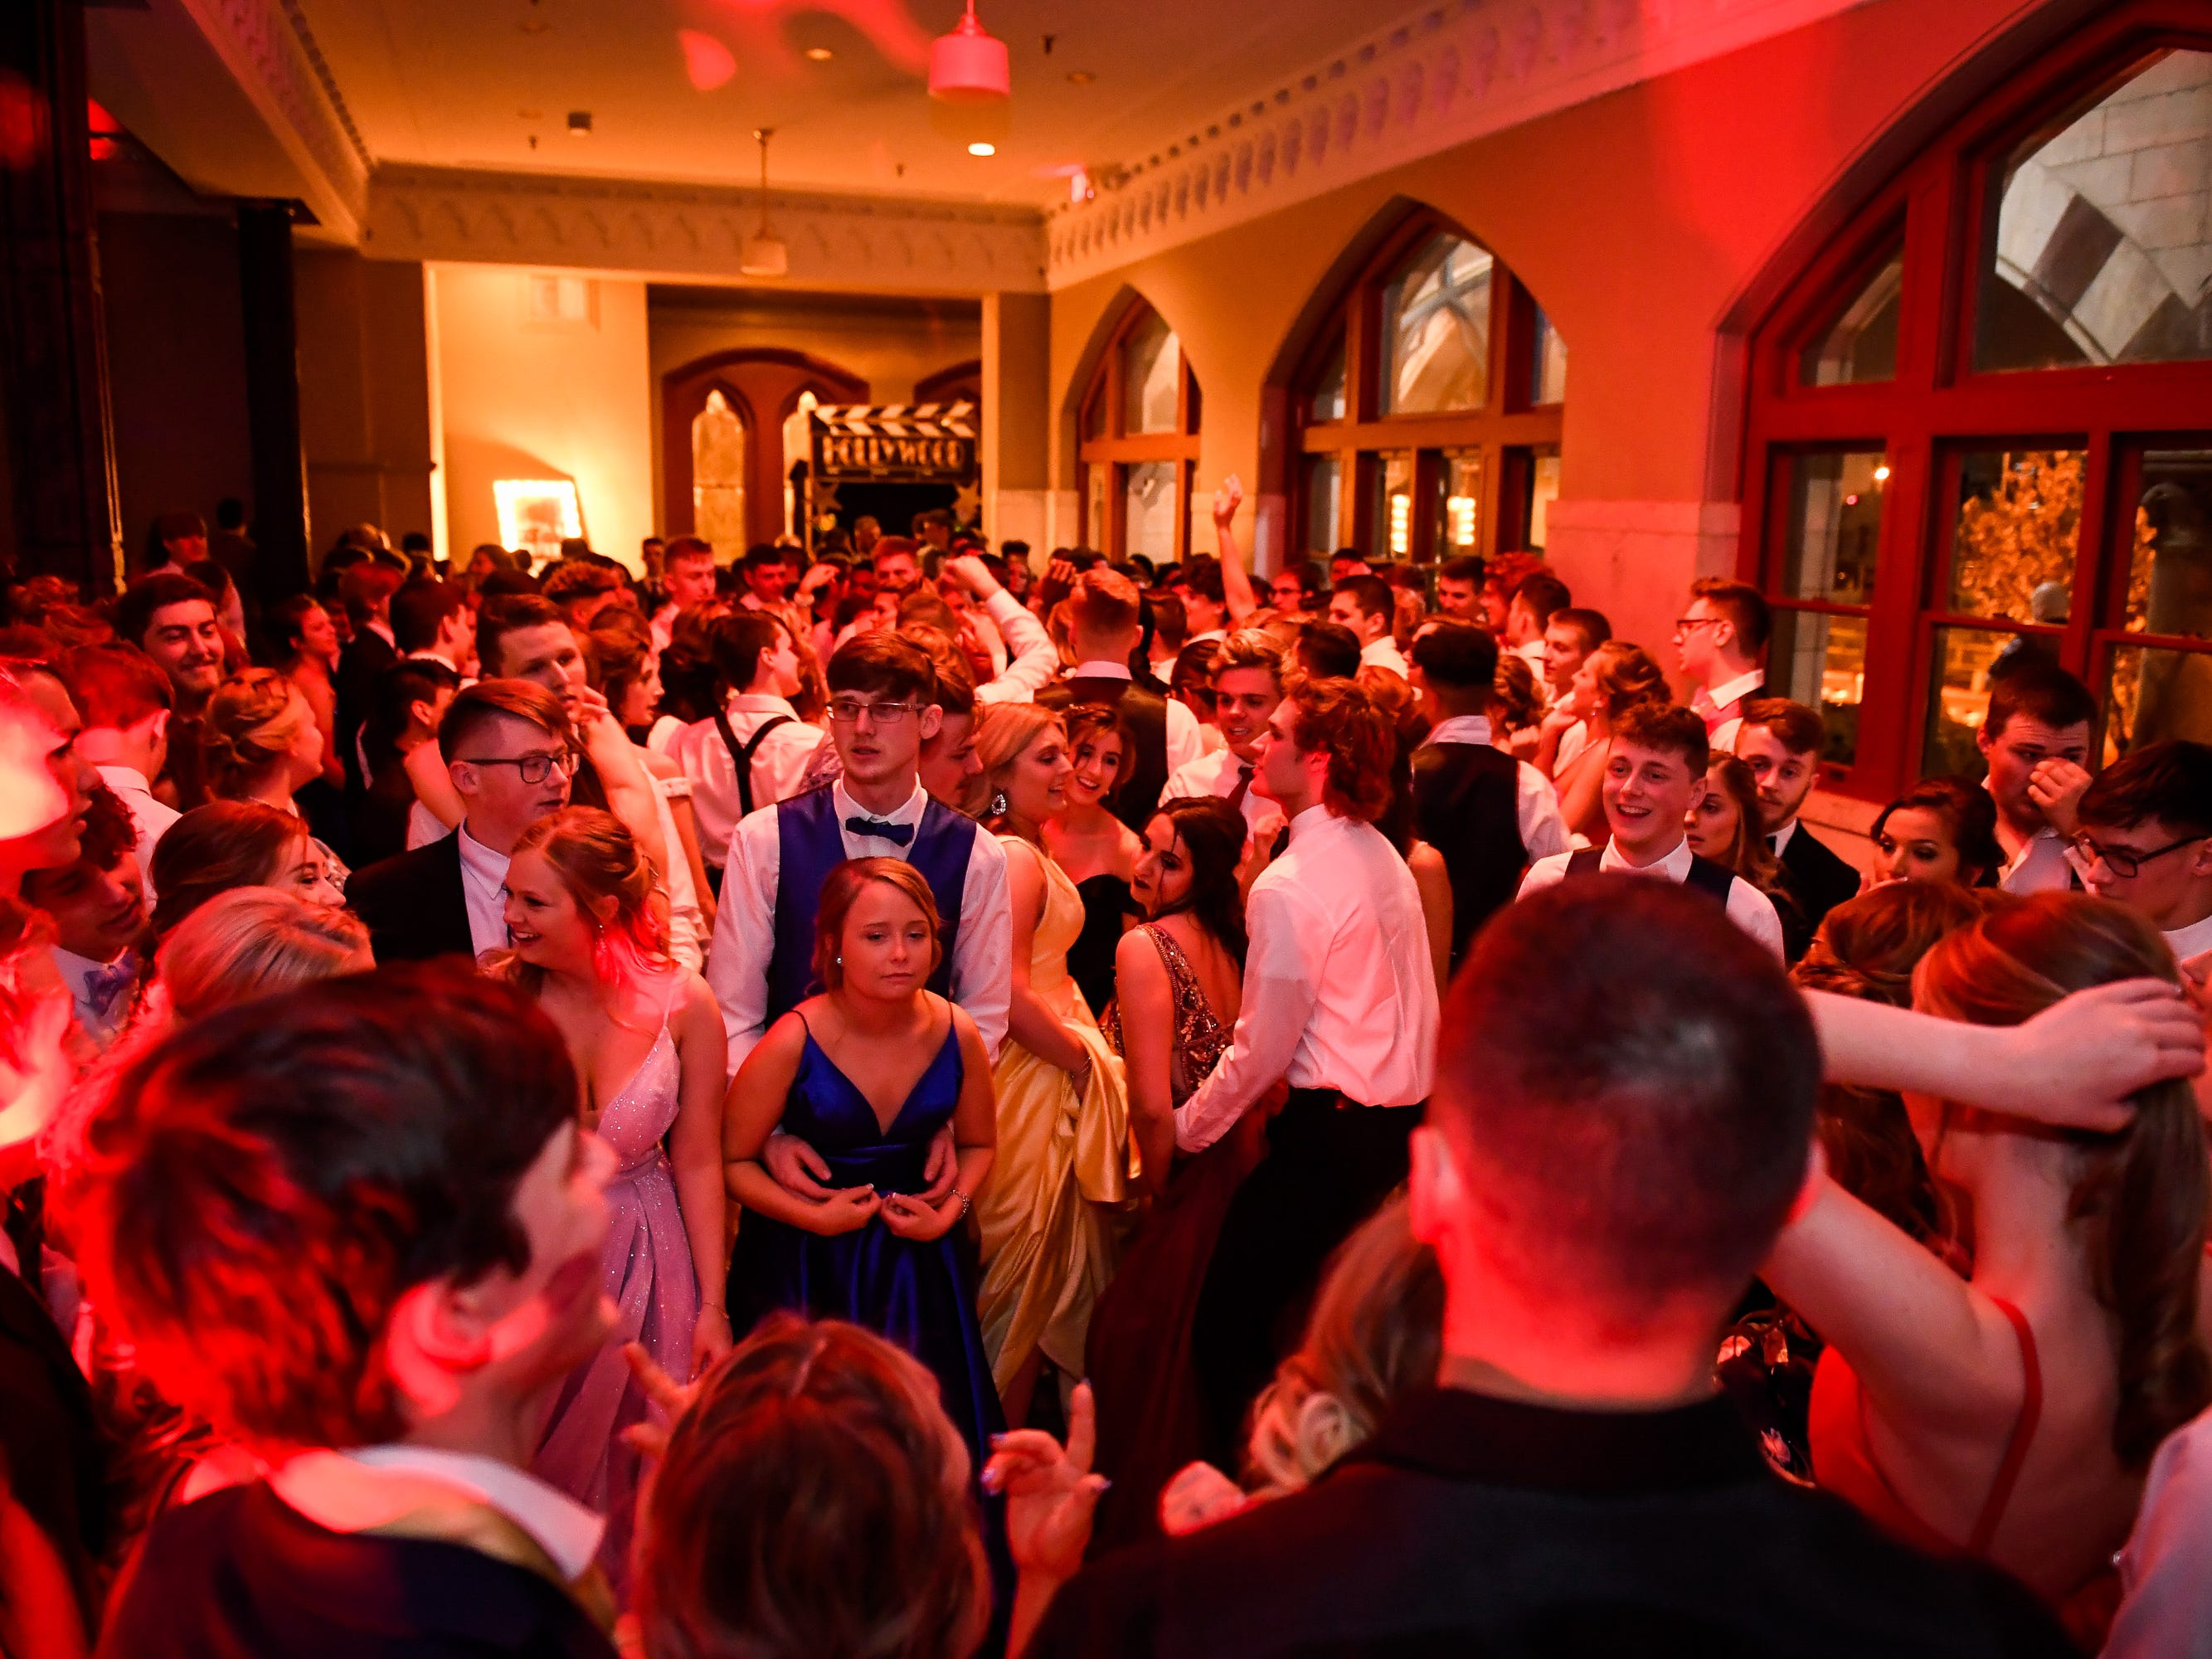 The dance floor at the North High School Prom held at the Old Post Office in downtown Evansville Saturday, April 13, 2019.